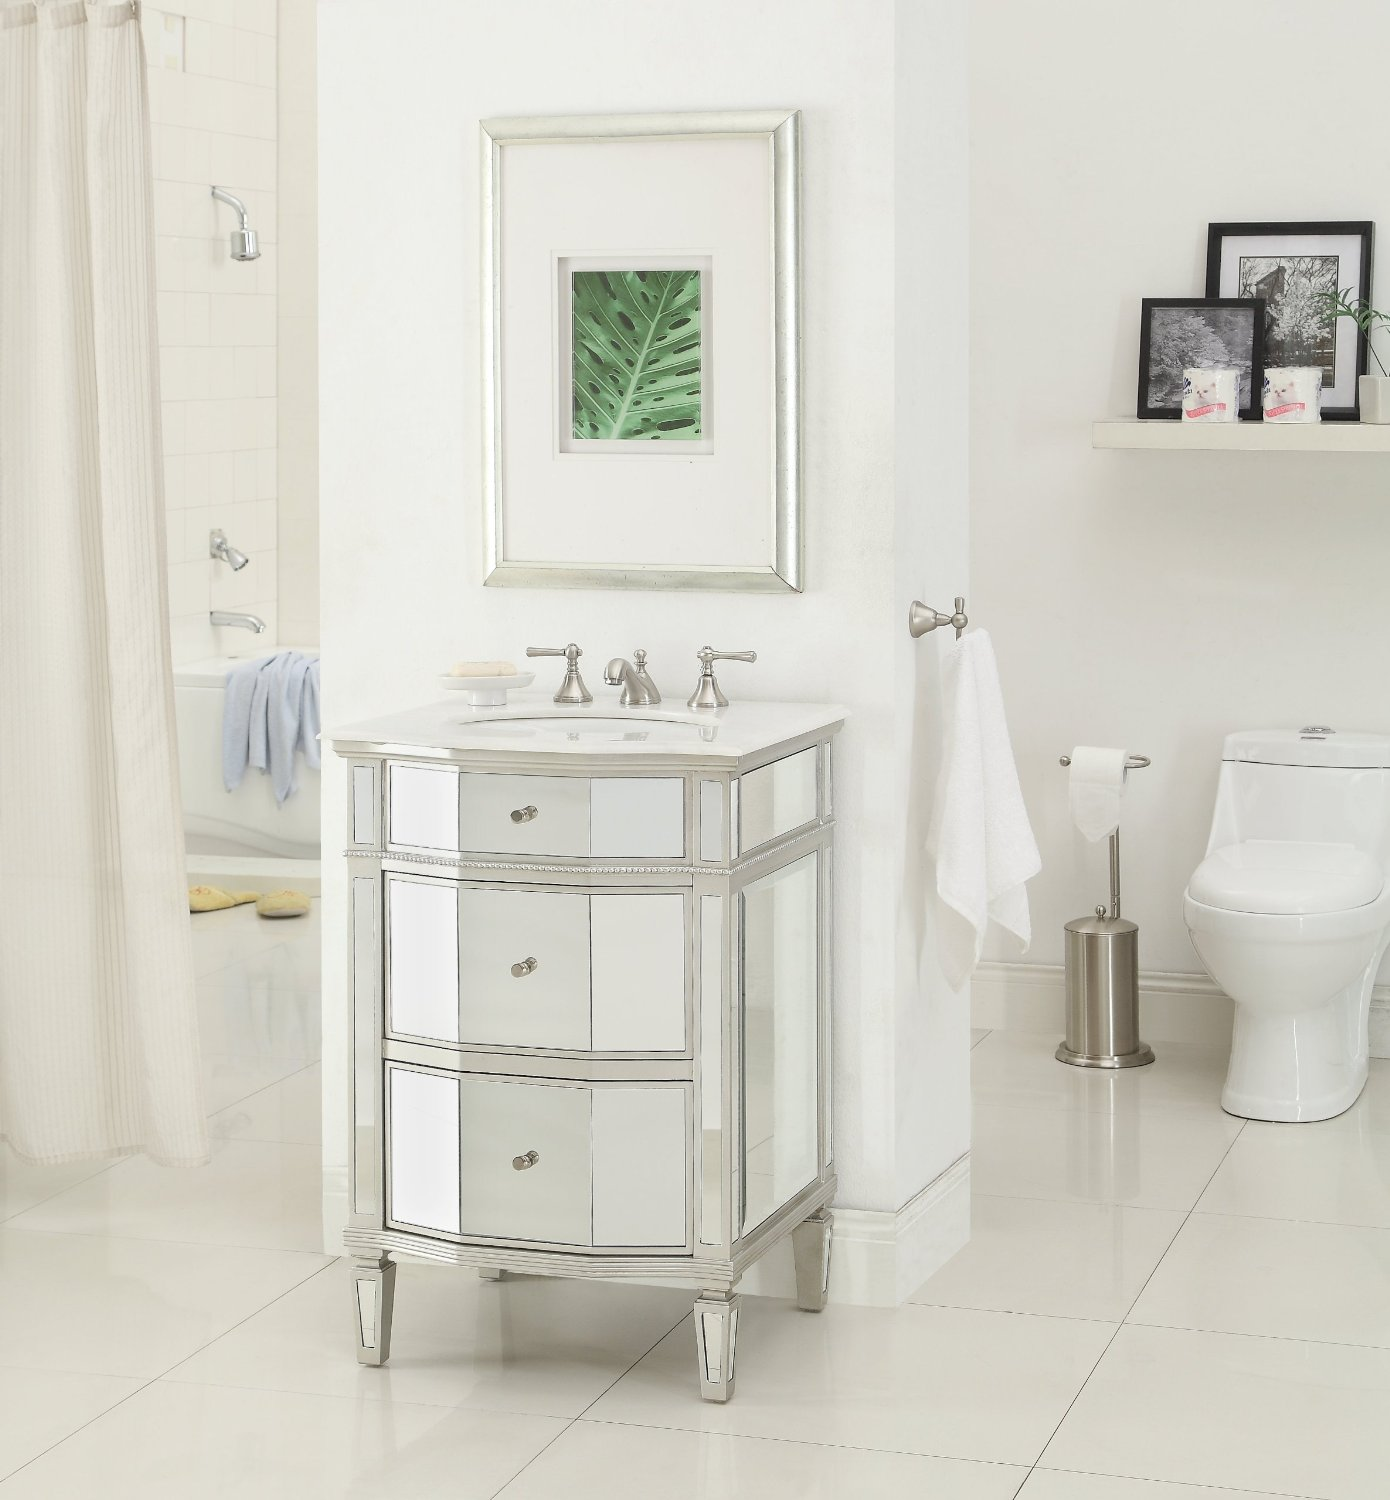 Seductive Interior With Mirrored Bathroom Vanity also Towel Hook Plus Toilet